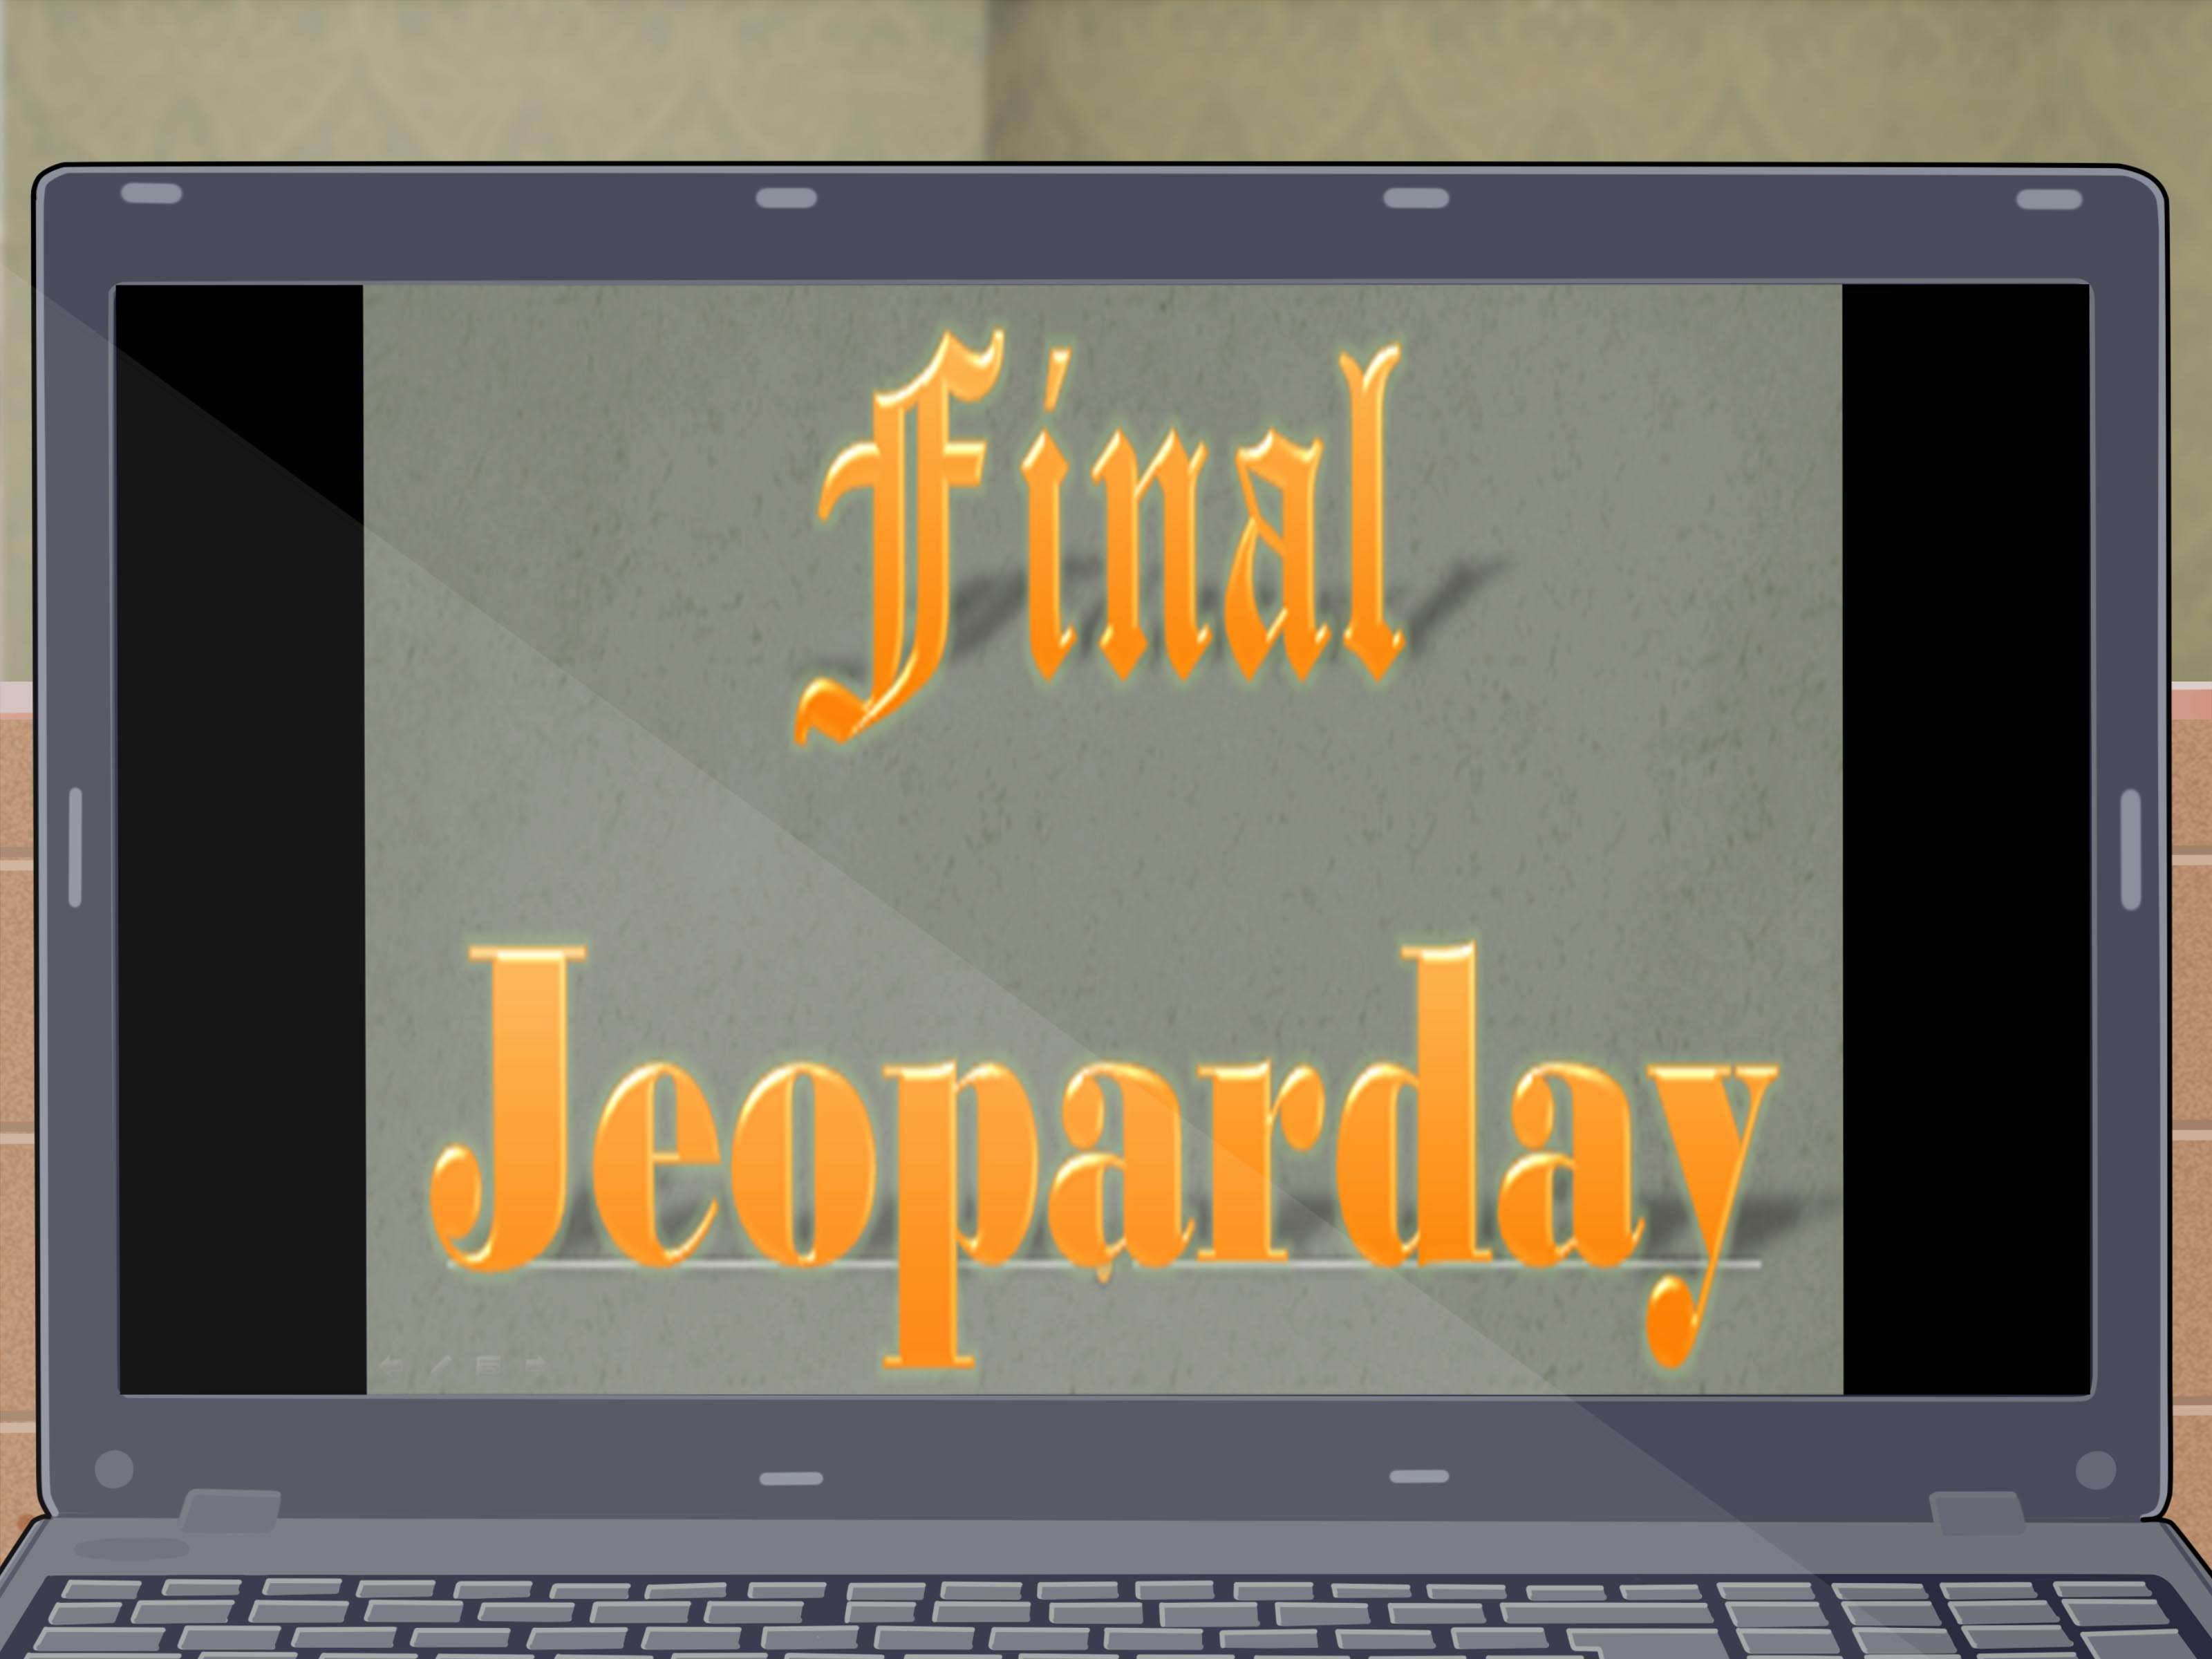 Come Creare Un Gioco A Quiz Jeopardy Game Con Powerpoint